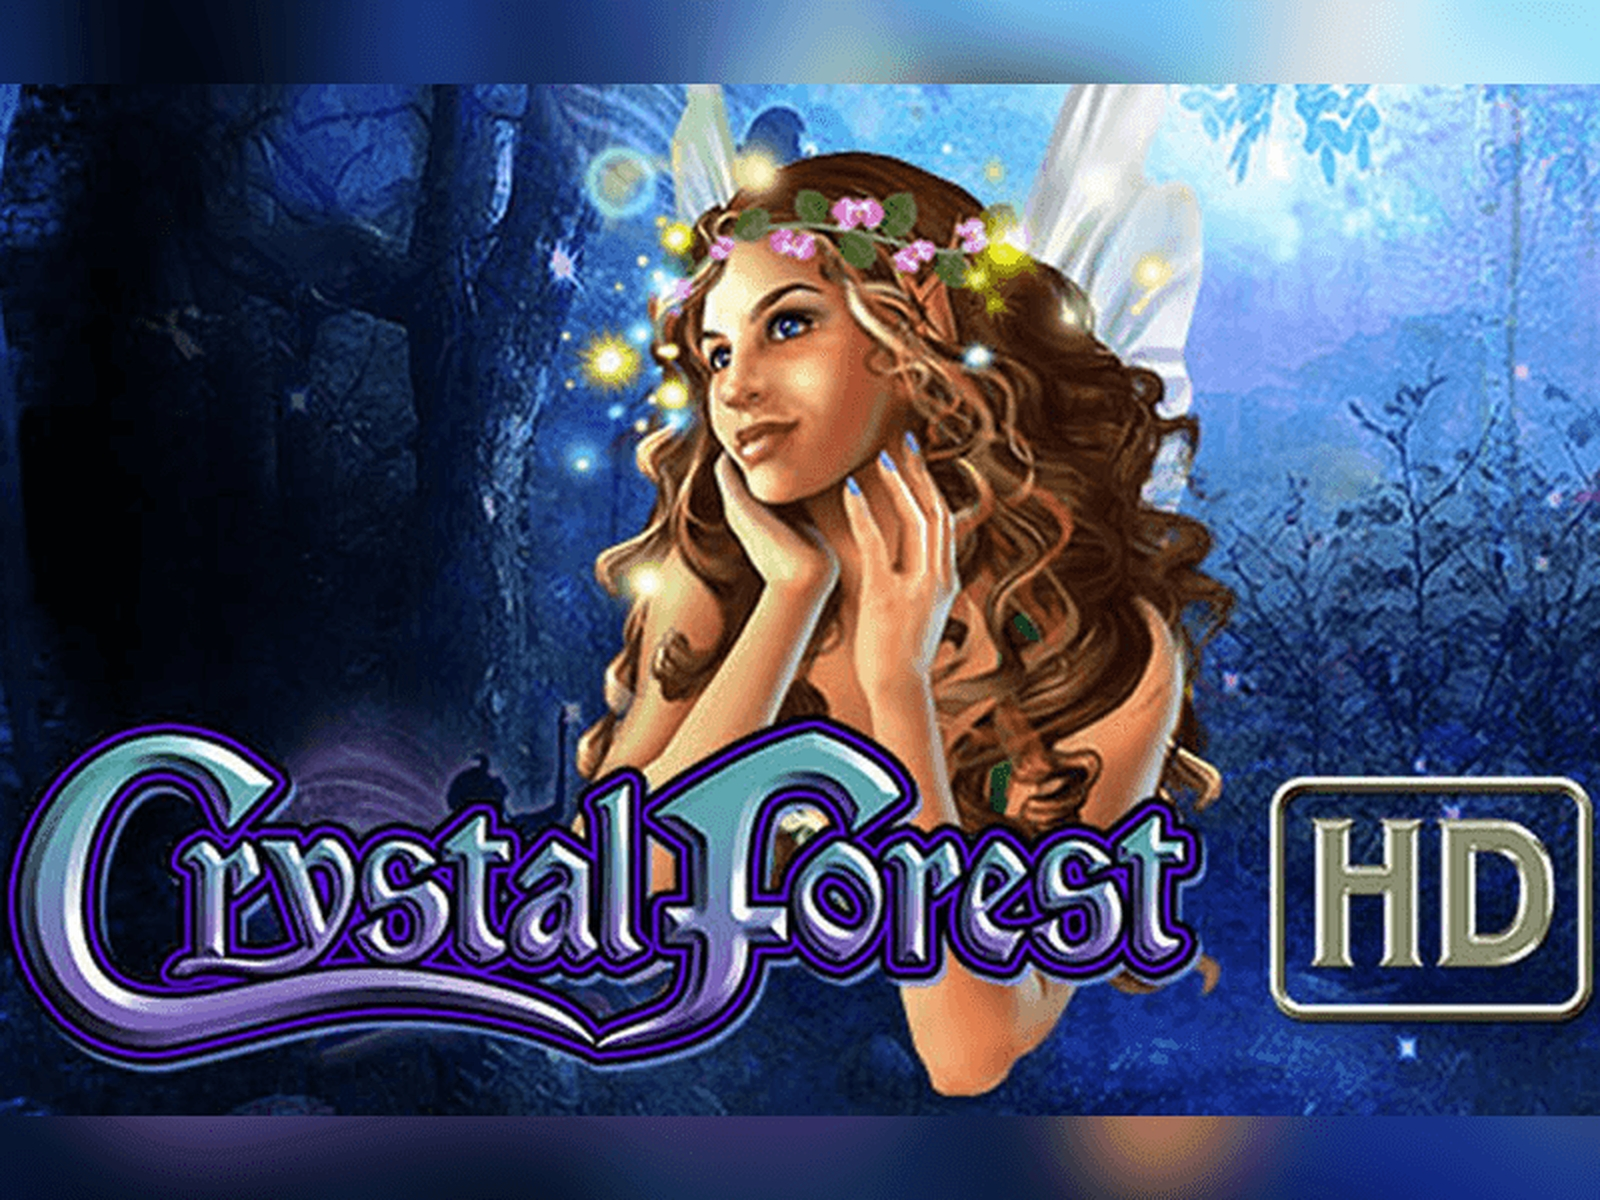 The Crystal Forest HD Online Slot Demo Game by WMS